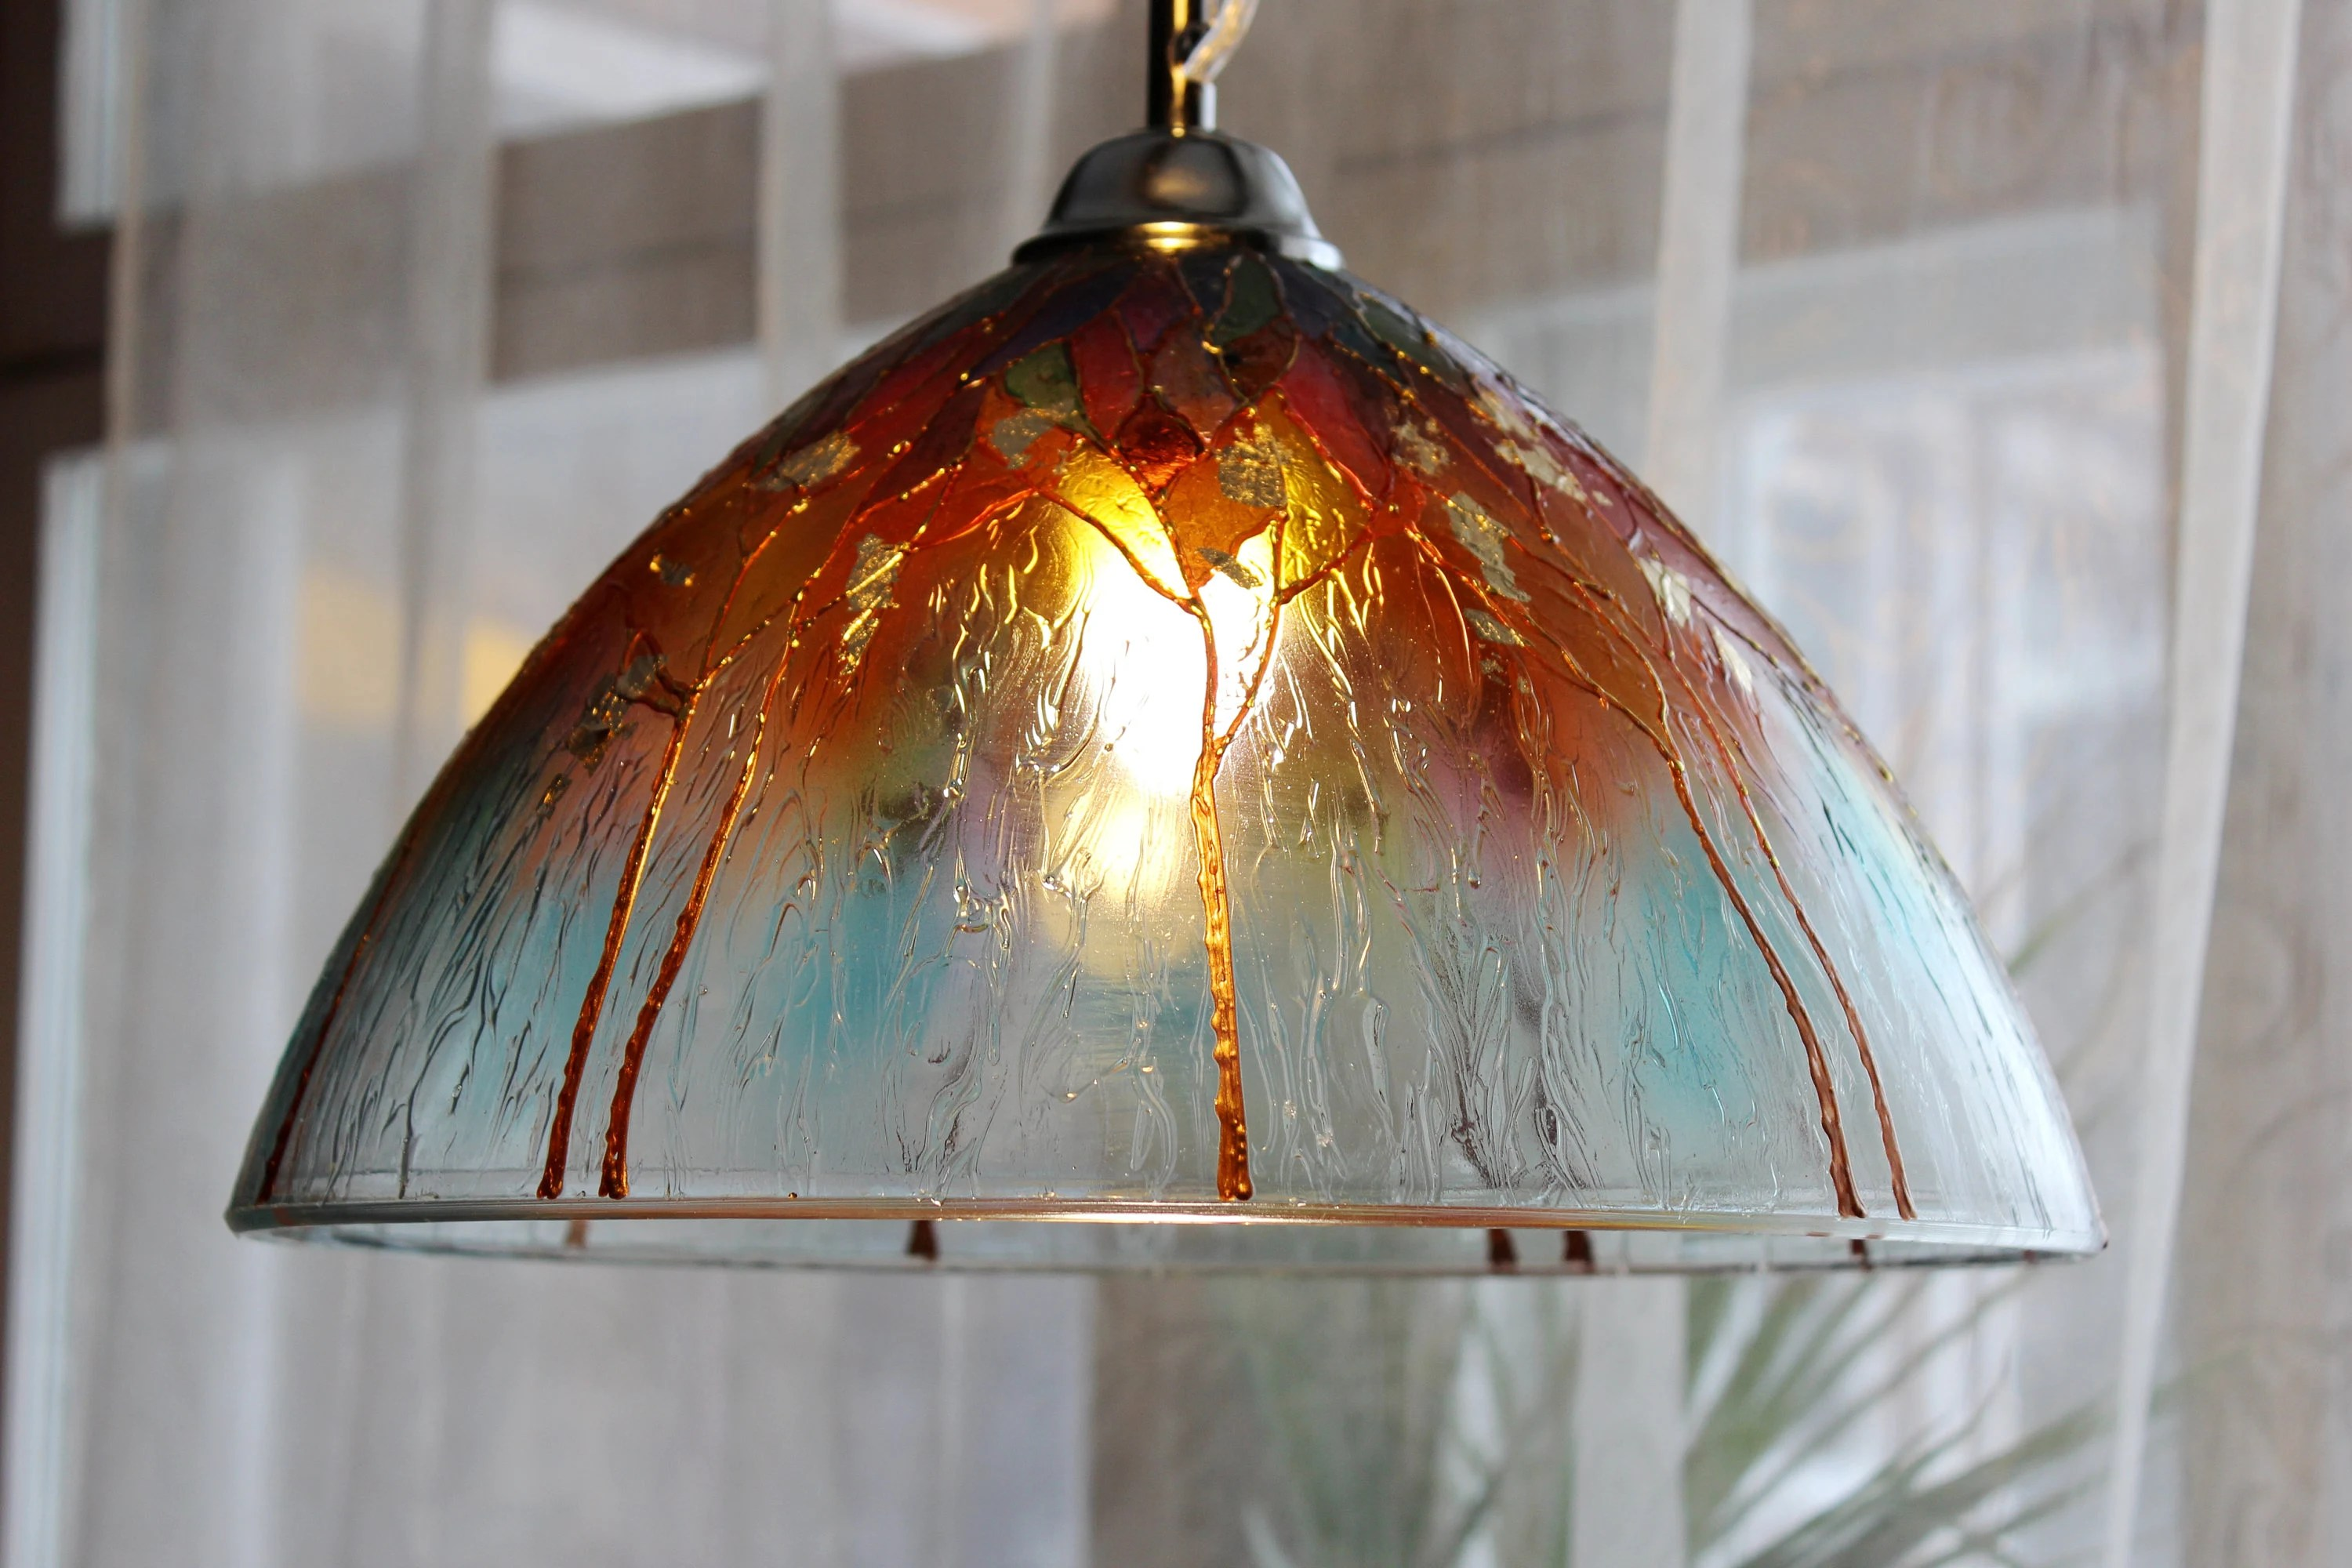 Glass Lamp Ceiling Kitchen Lighting Stained Glass Lamp Shade Glass Pendant Light Ceiling Light Hanging Lamp Dining Room Decor Glass Chandelier Ceiling Fixture